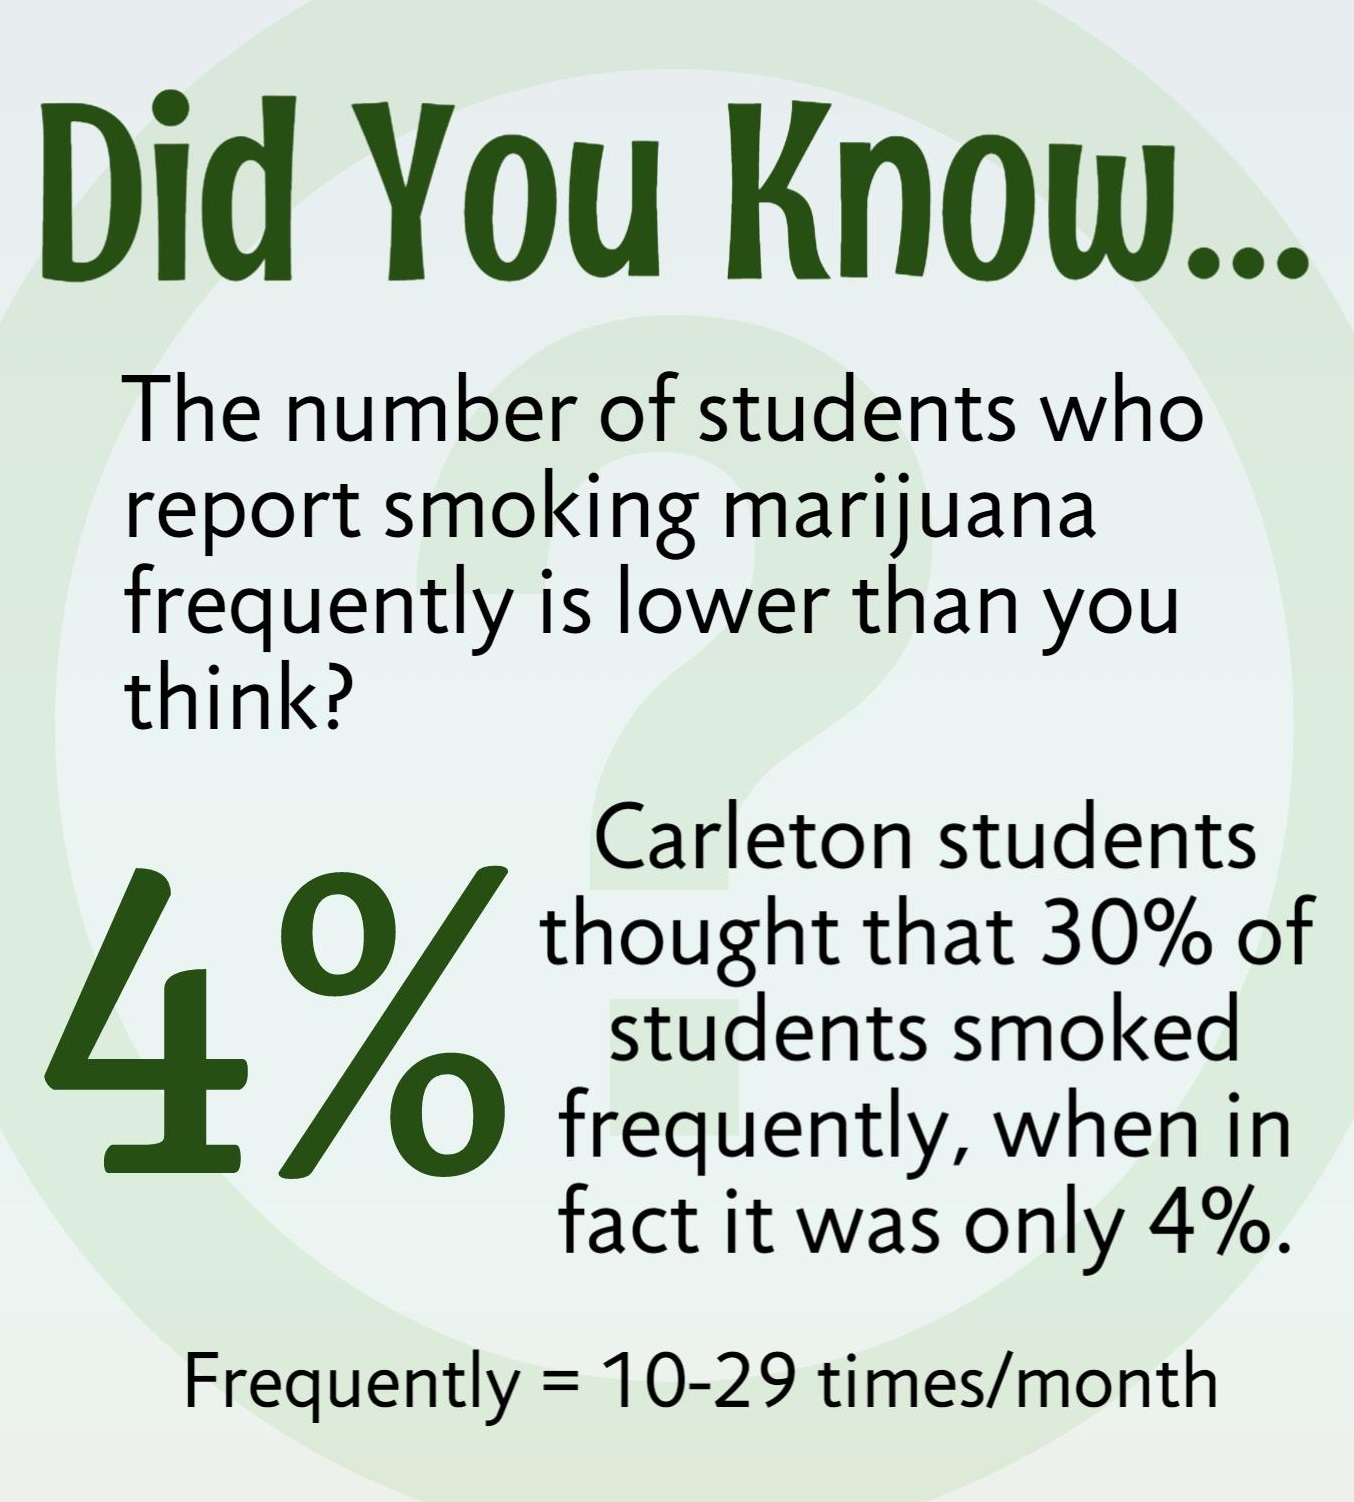 Did You Know... The number of students who report smoking marijuana frequently is lower than you think? Carleton students thought that 30% of students smoked frequently, when in fact it was only 4%. Frequently mean smoking 10-29 times per month.